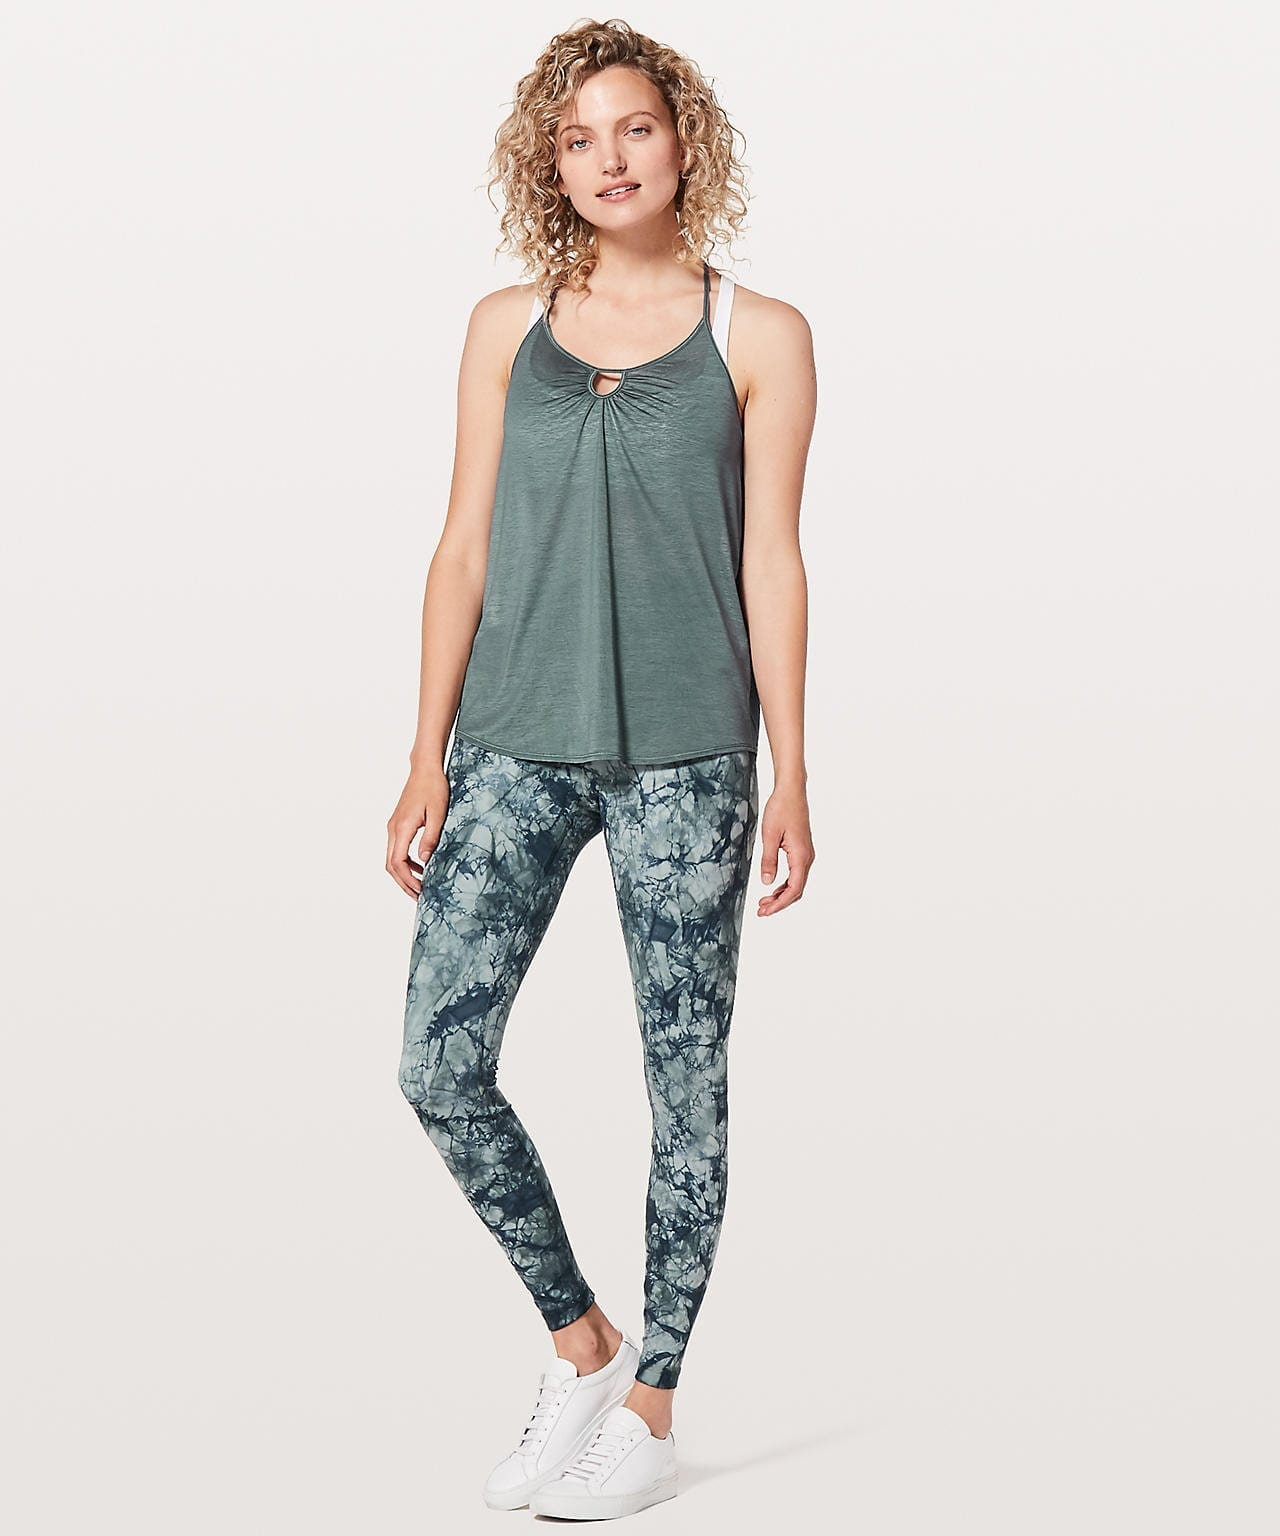 Lululemon New Product, Lululemon - Tighten Up Tank